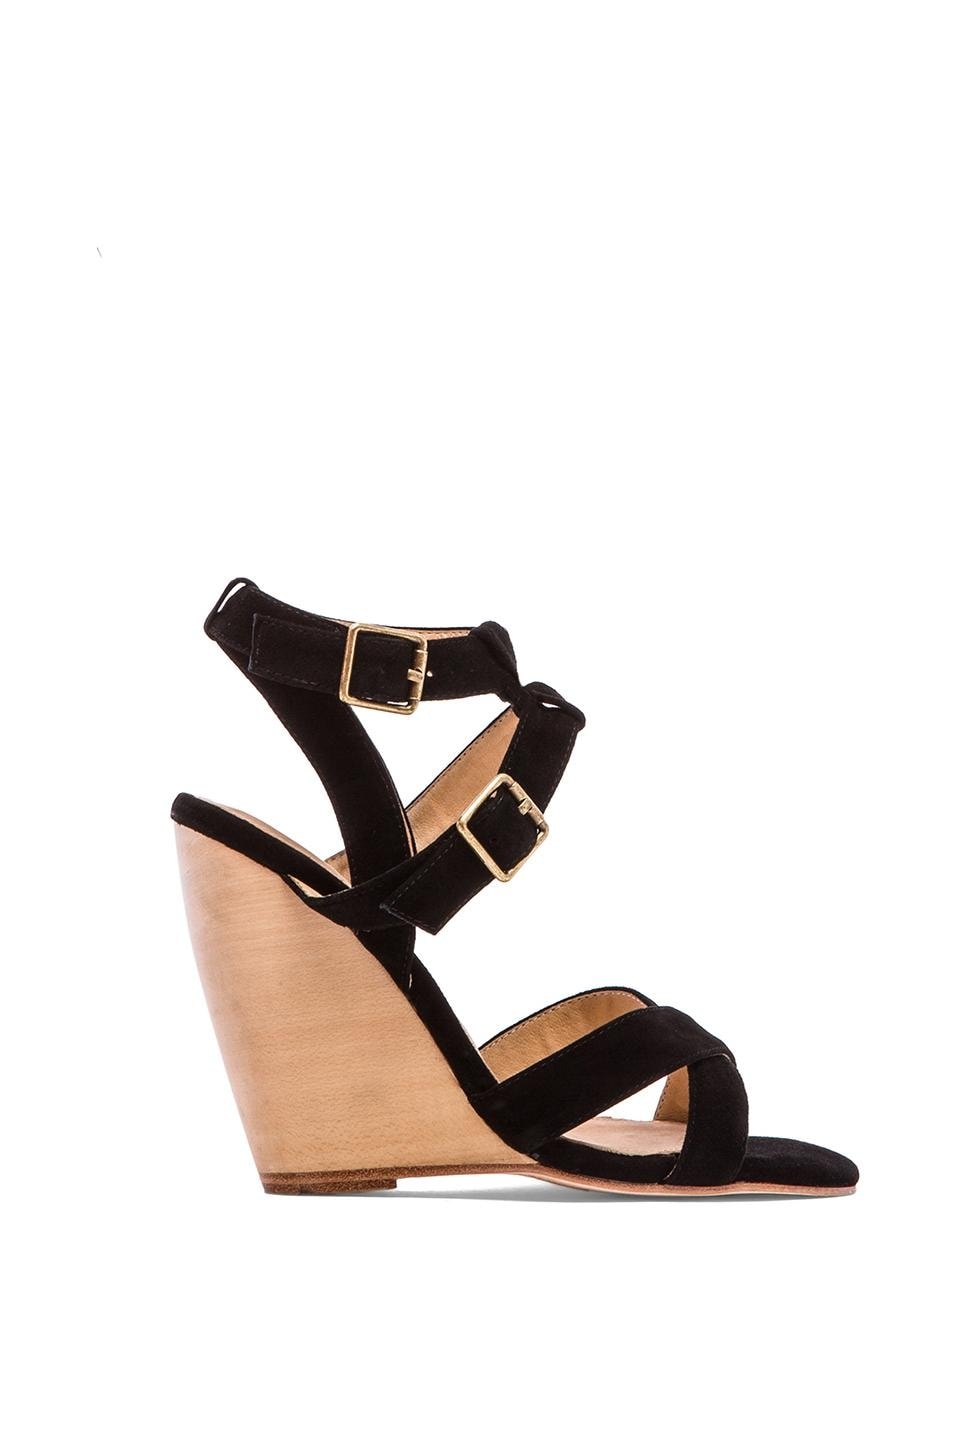 MADISON HARDING Kareen Cross Ankle Strap Wedge in Black Suede